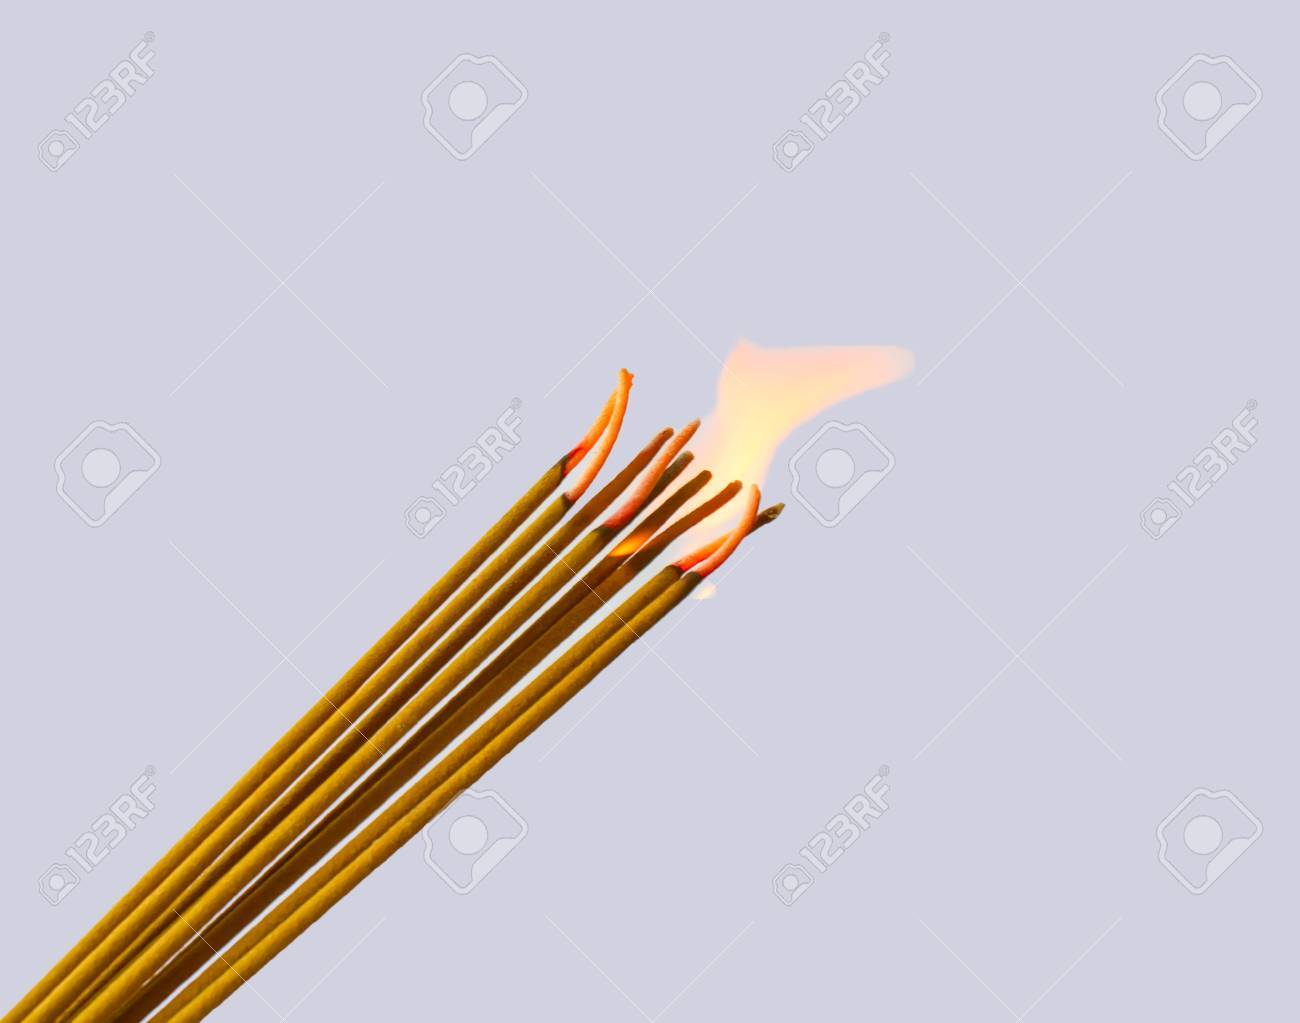 Photo of a burning incense stick with smoke on a grey background Stock Photo - 23116681